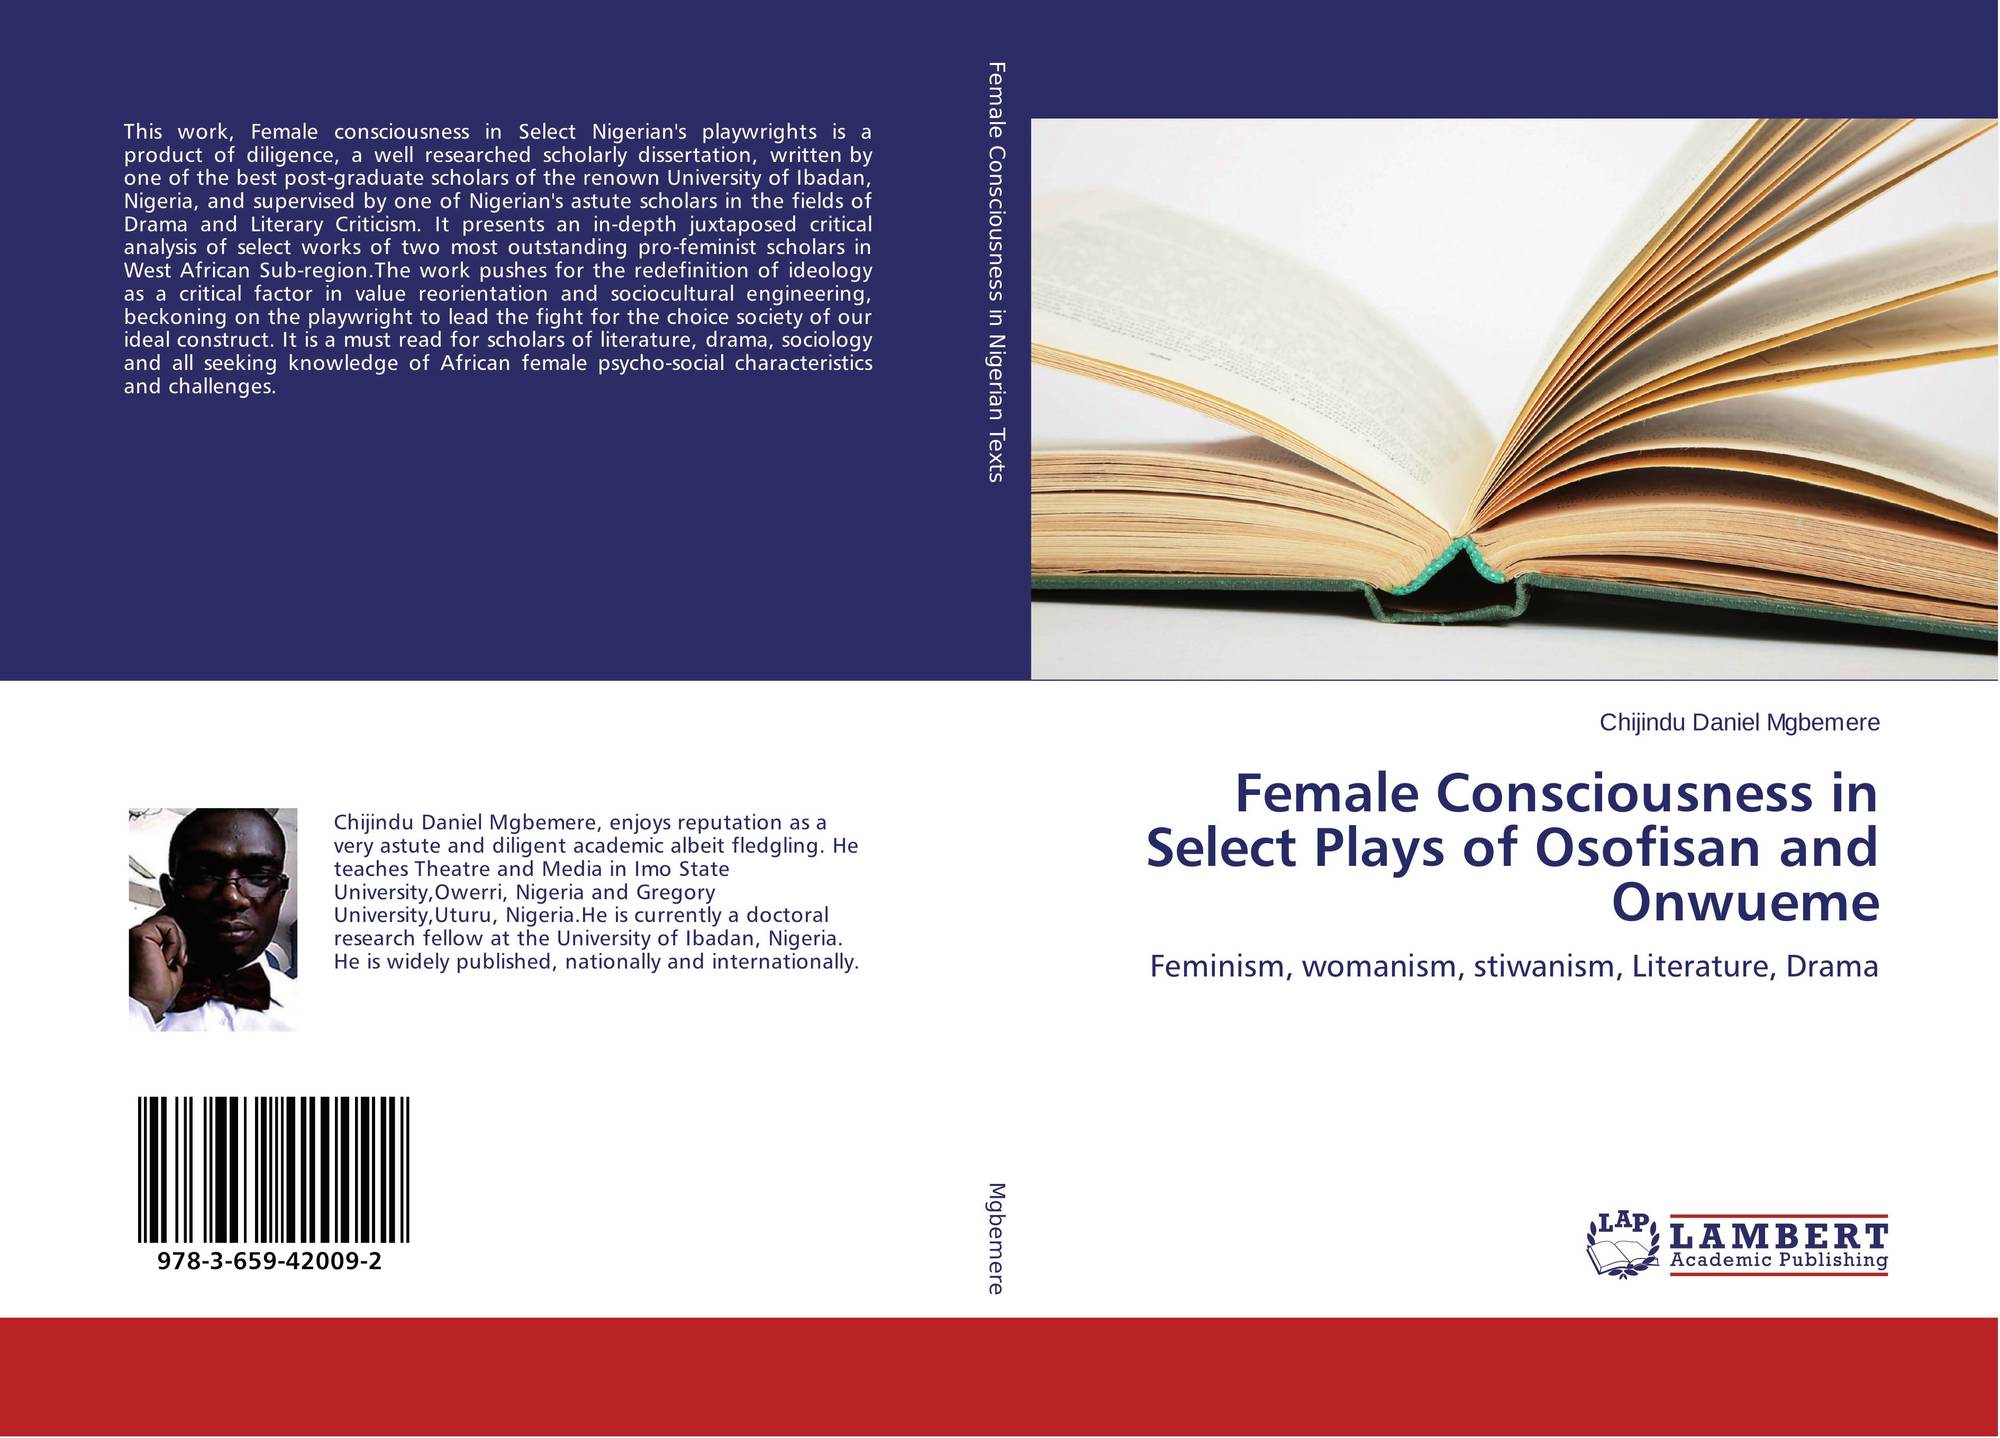 an analysis of womens studies on sex in society Study flashcards on women's studies - exam #1 (trying to meet society's person who believes s/z/he was born with the body of the wrong sex and who desires.